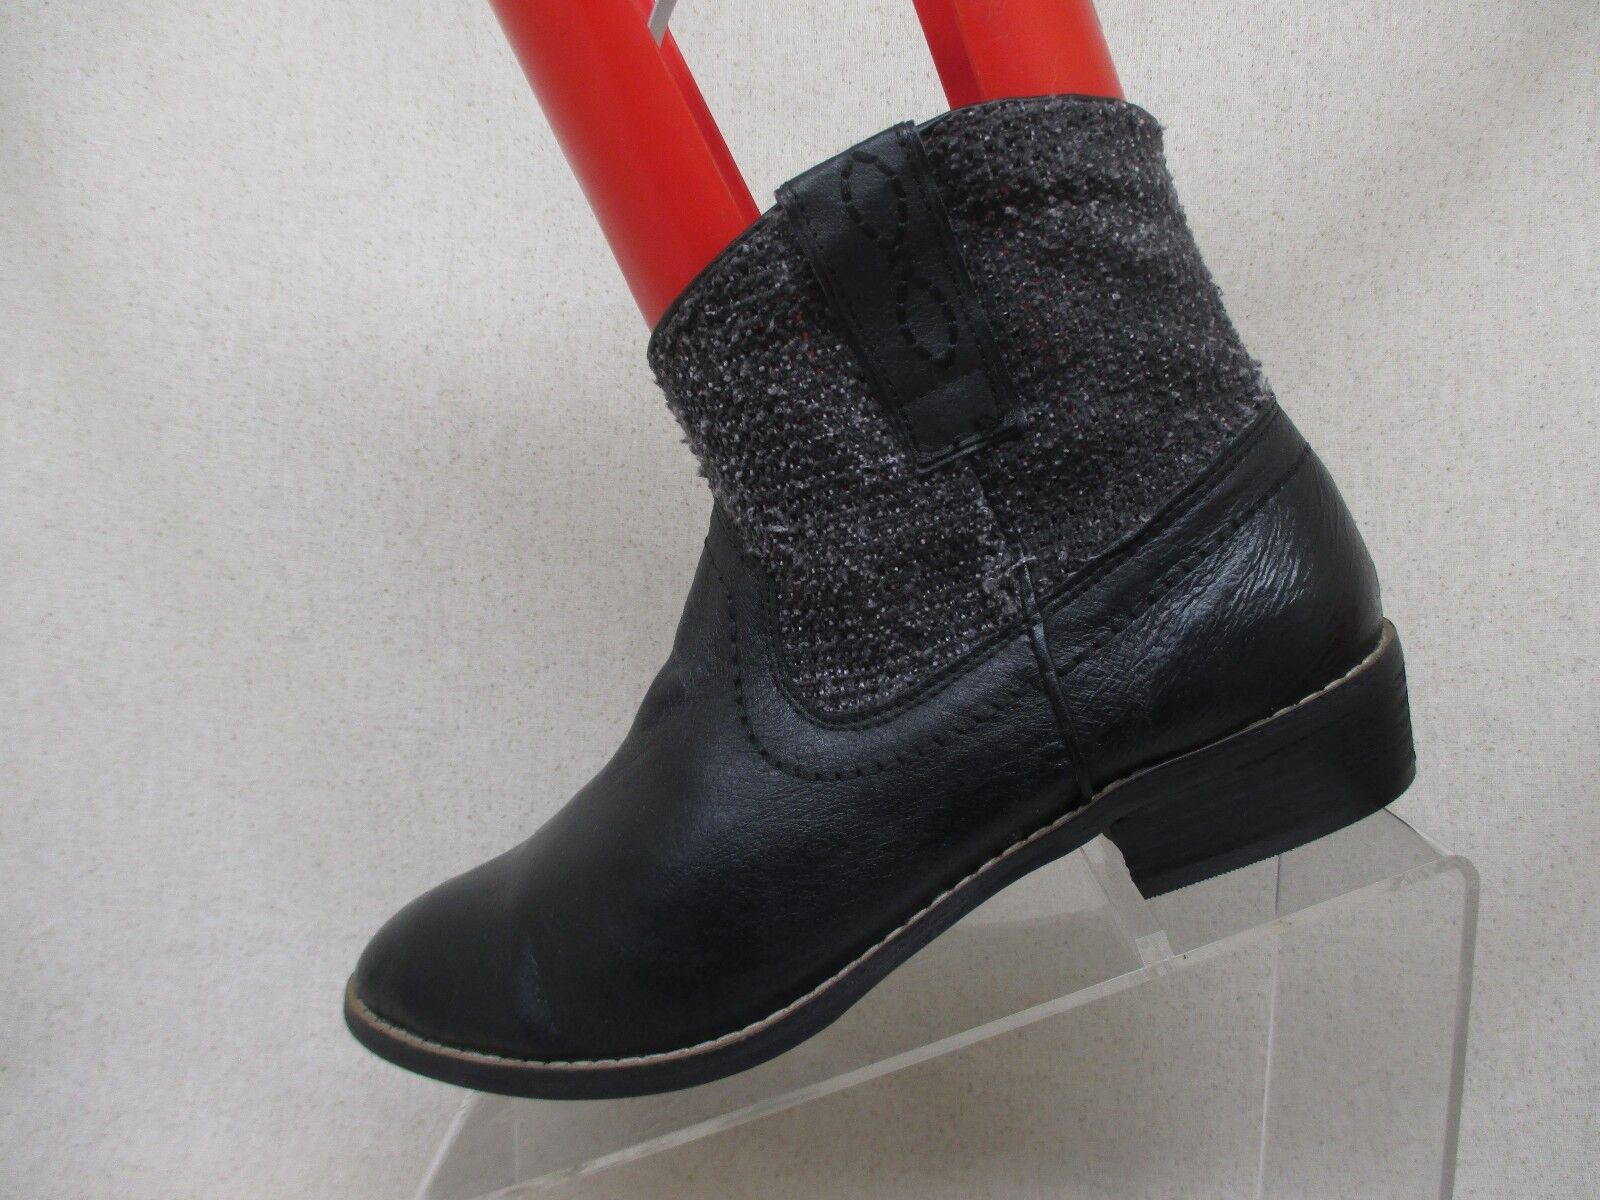 Steve Madden Black Leather Zip Heeled Ankle Boots Size 9 M Style P-Elle